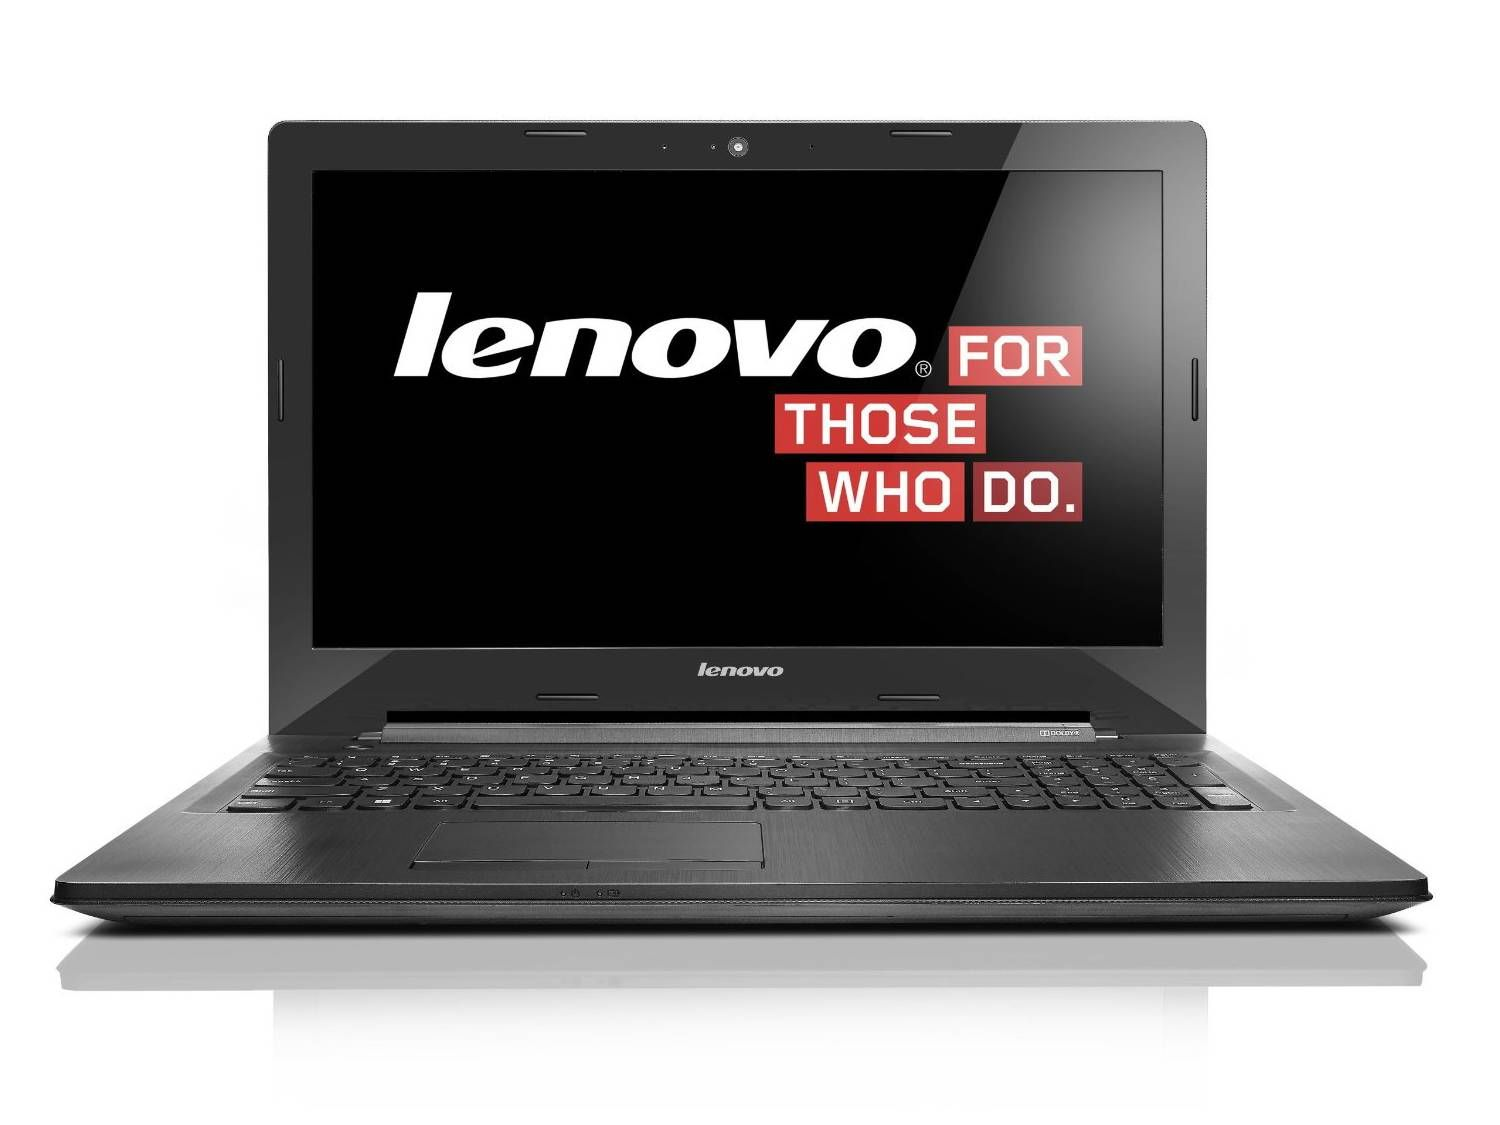 Lenovo G5030 Notebook Intel Celeron N2830 15 6 Inch 500gb 2gb Dark Grey Prices Uae Dubai Abu Dhabi Shop Online Taaol Lenovo Lenovo Laptop Lenovo Ideapad